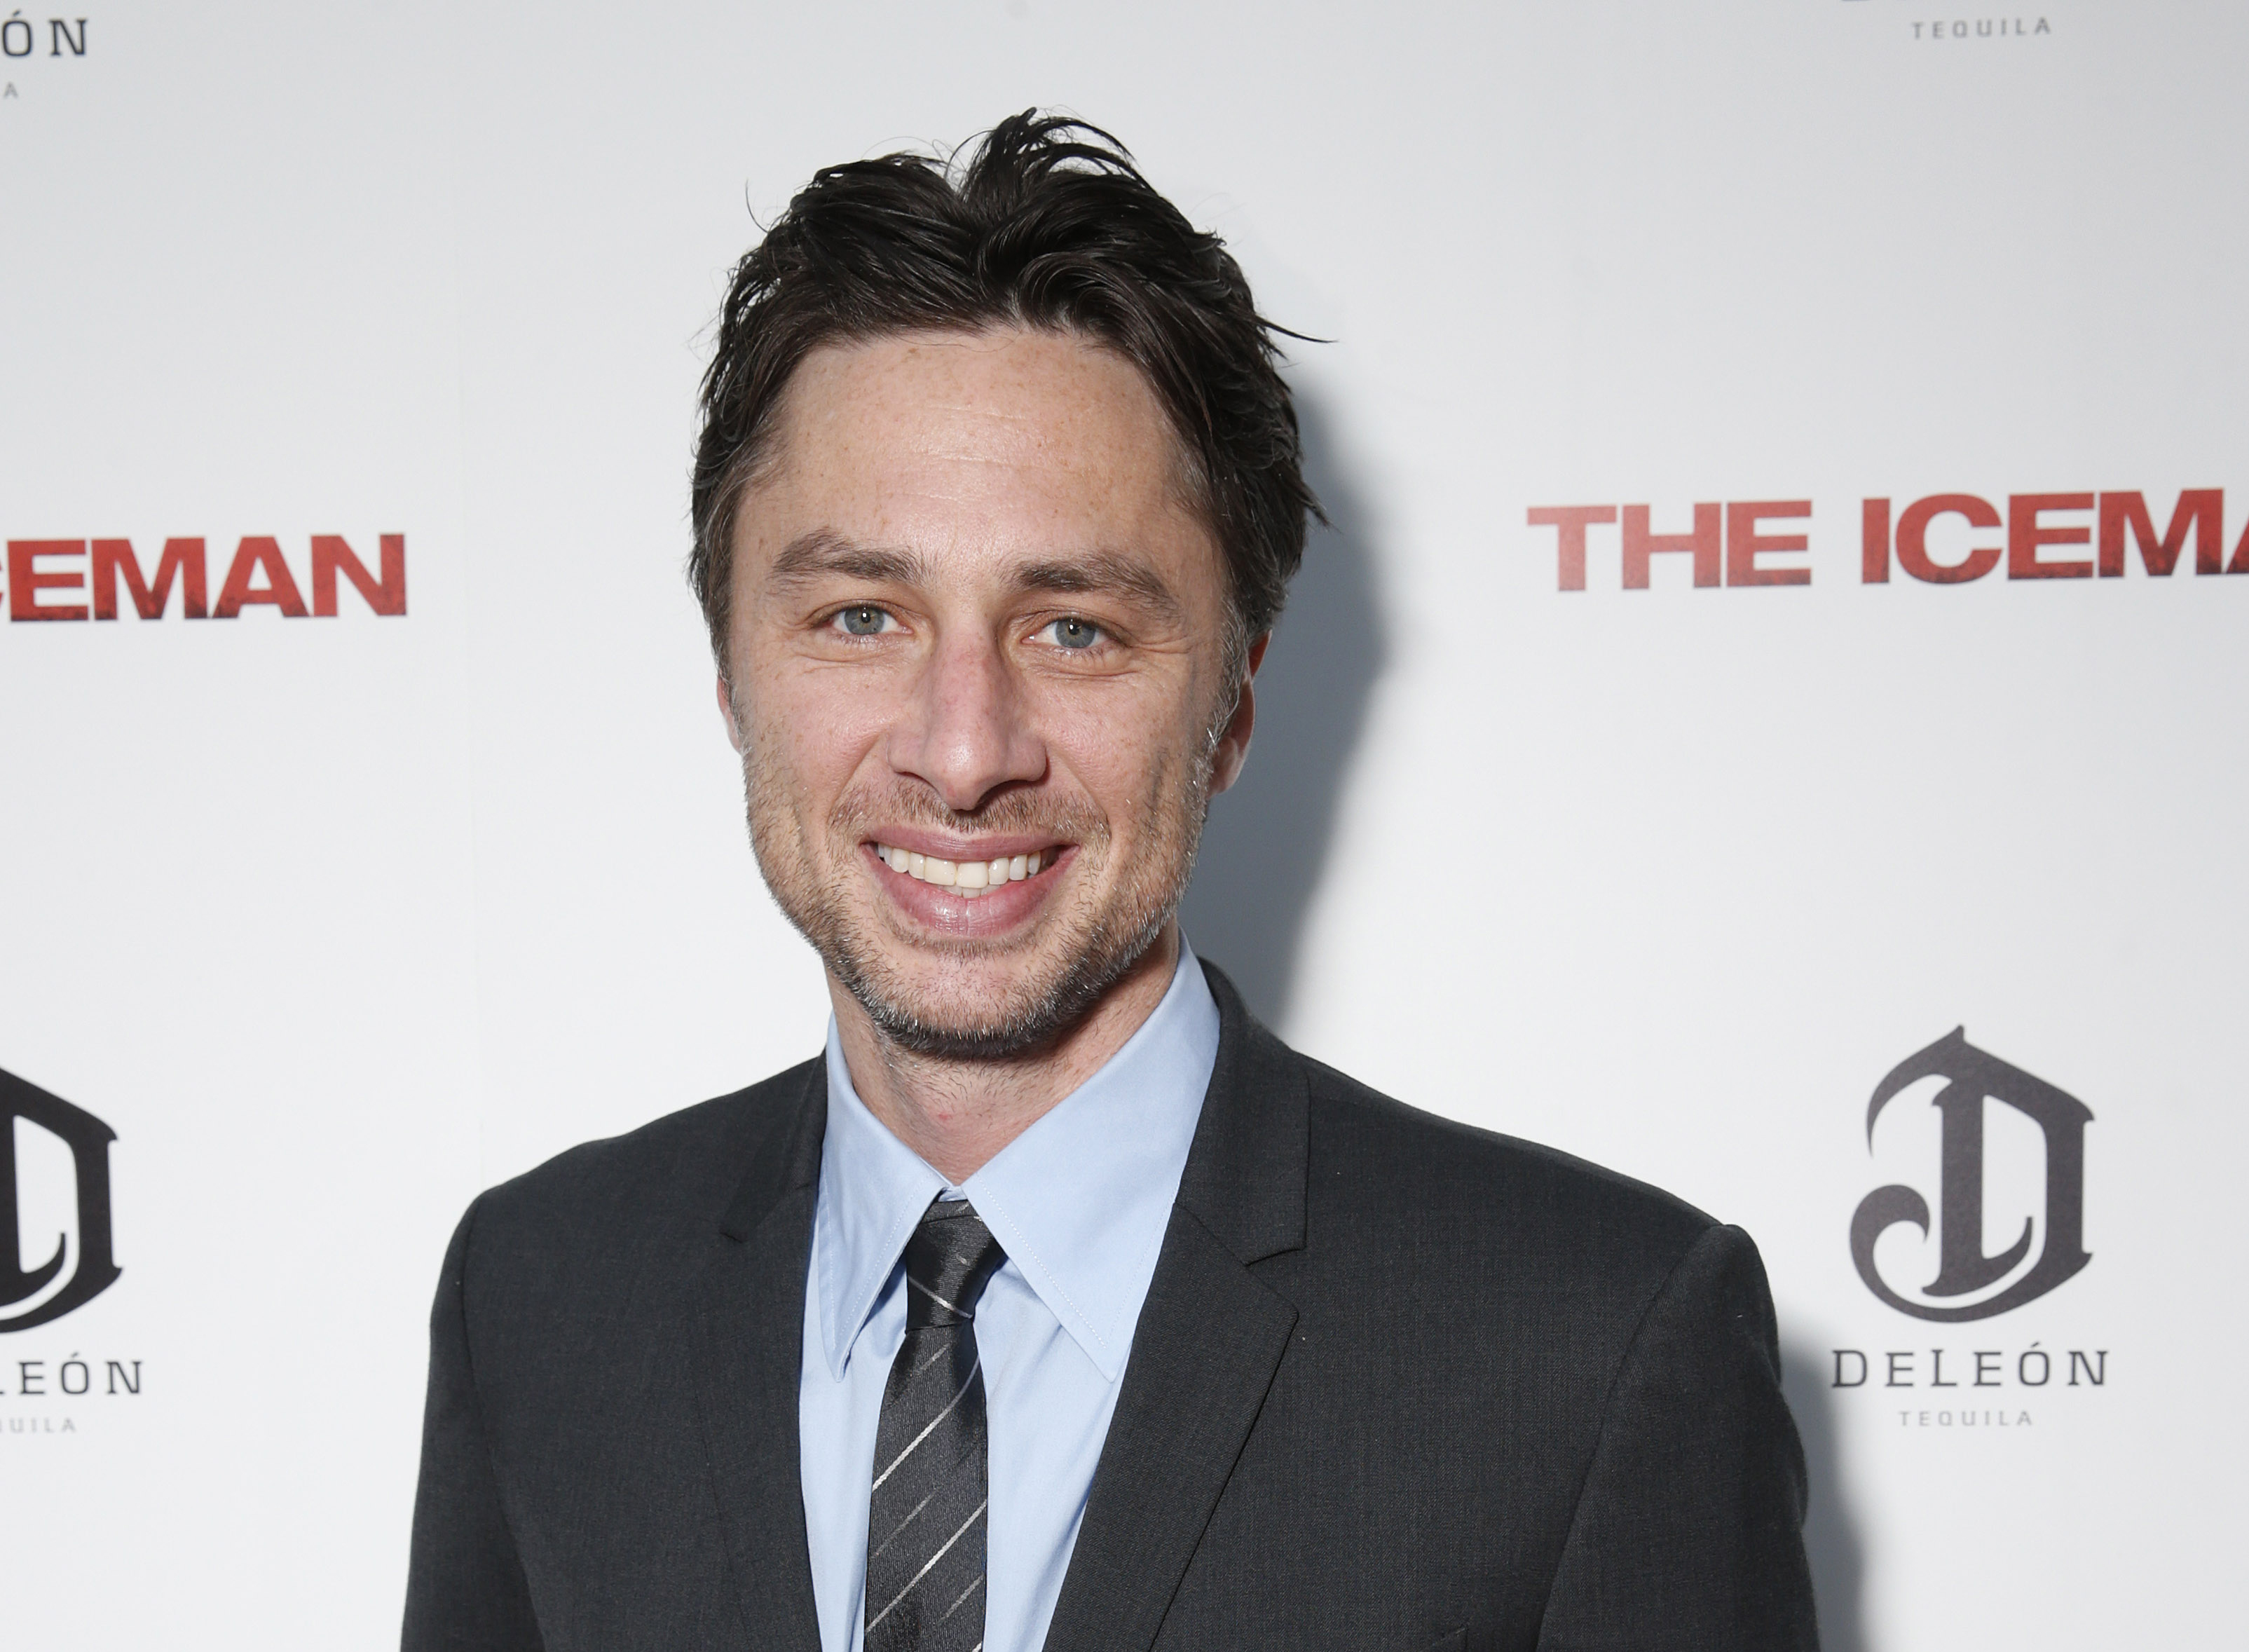 Zach Braff is swapping medicine for business in new TV comedy pilot Start Up